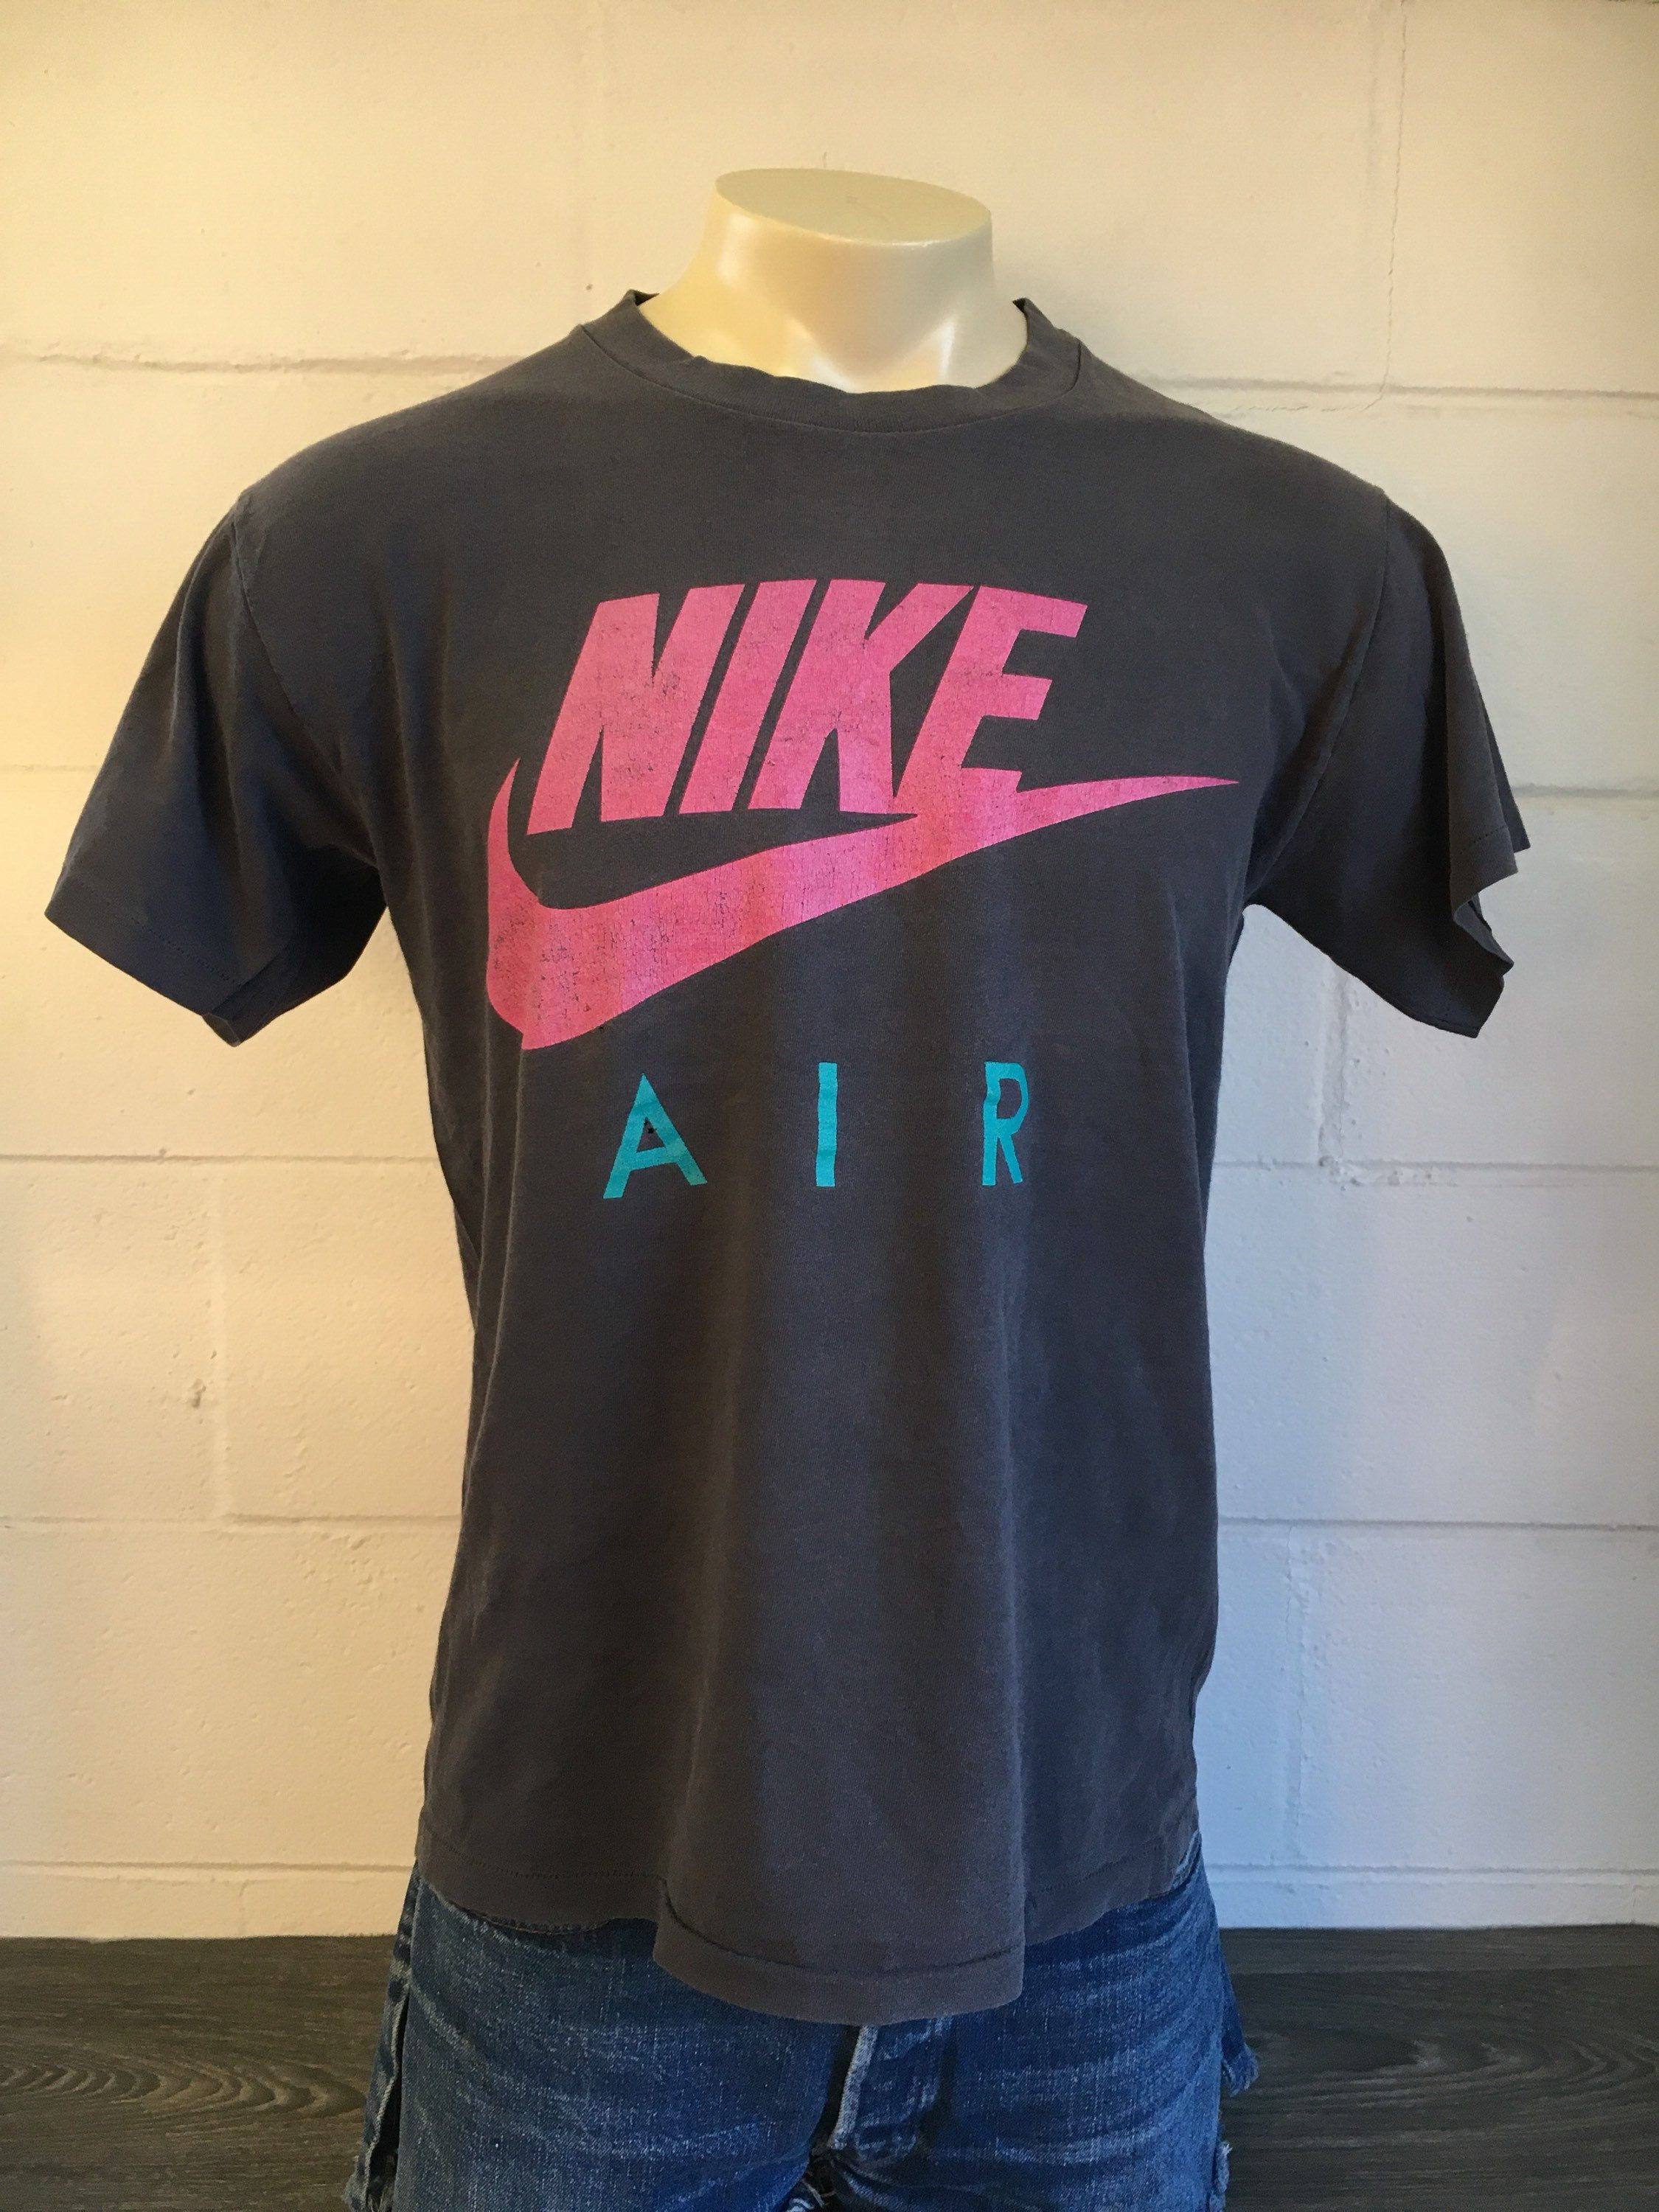 ee67e948658ad Nike Air Shirt 90s Vintage Burn out Black Mirror Image Double Sided ...